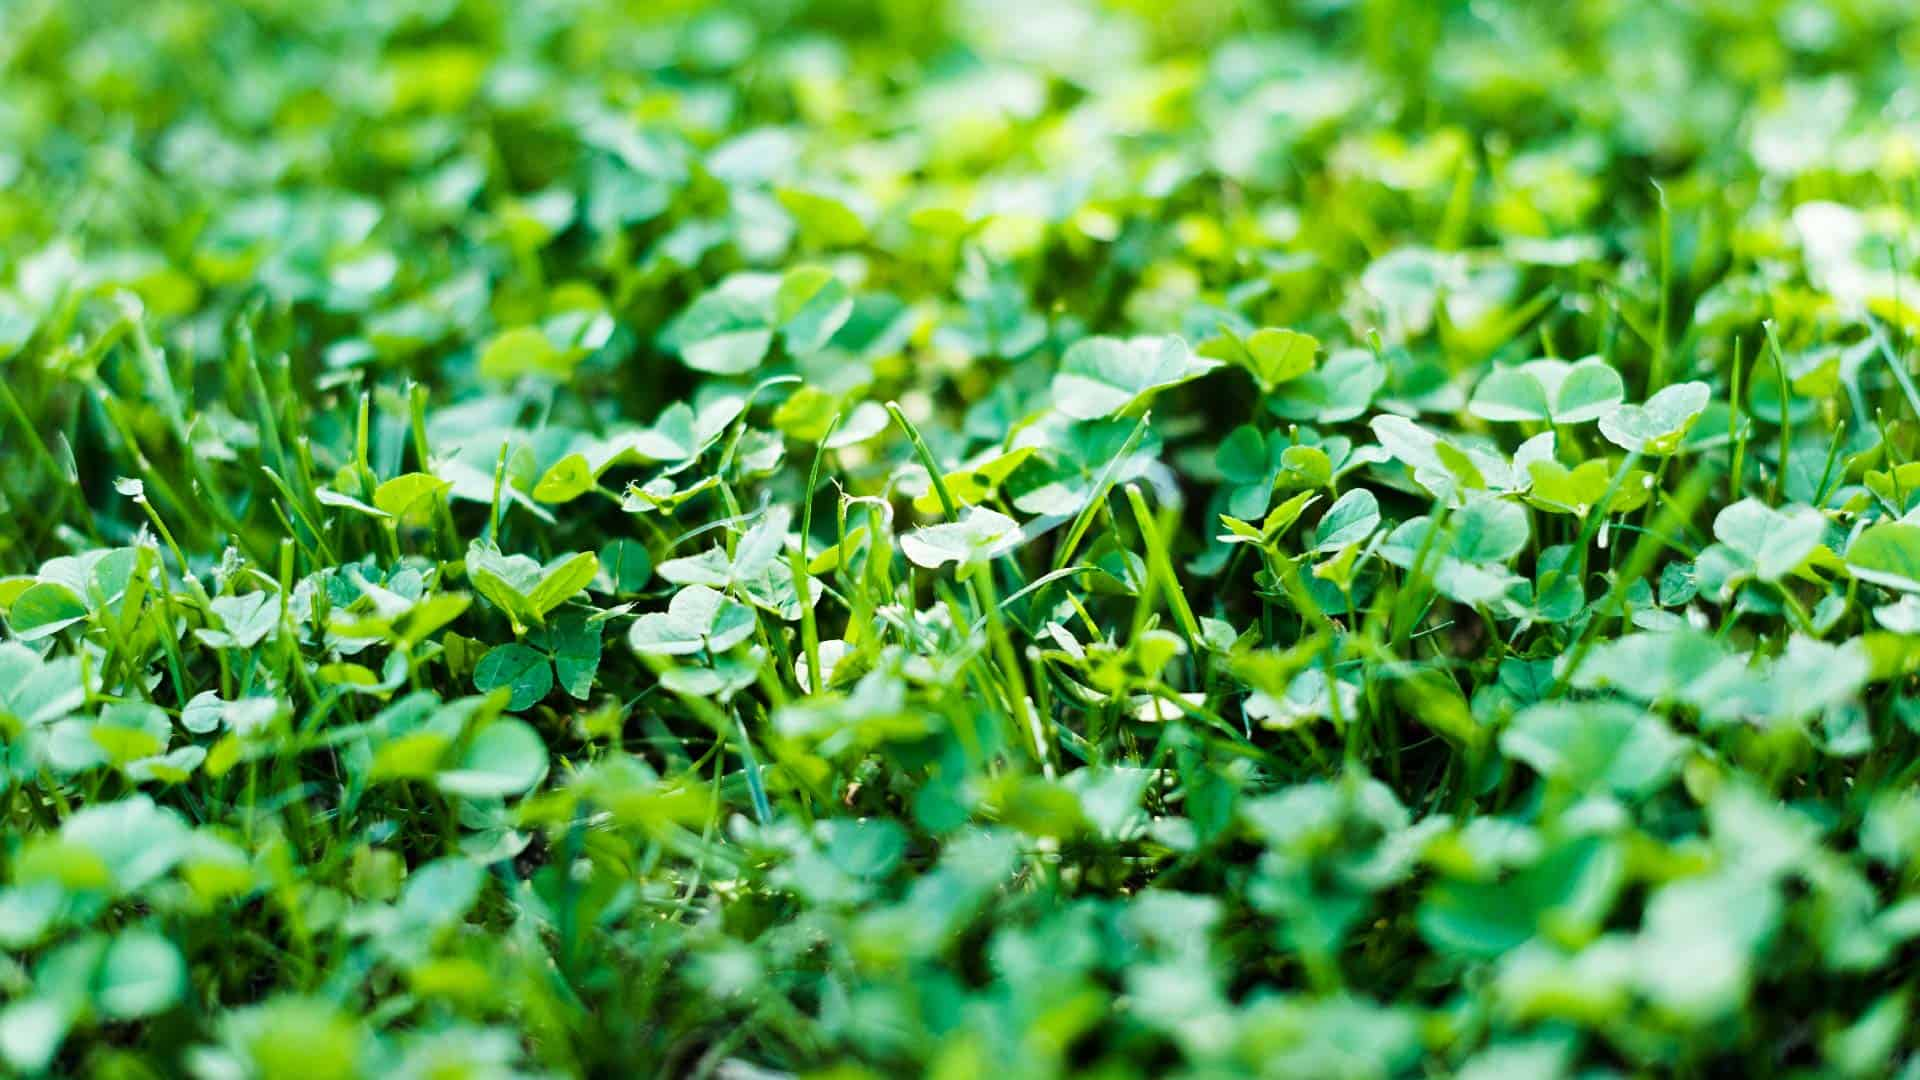 Clover growing in green grass